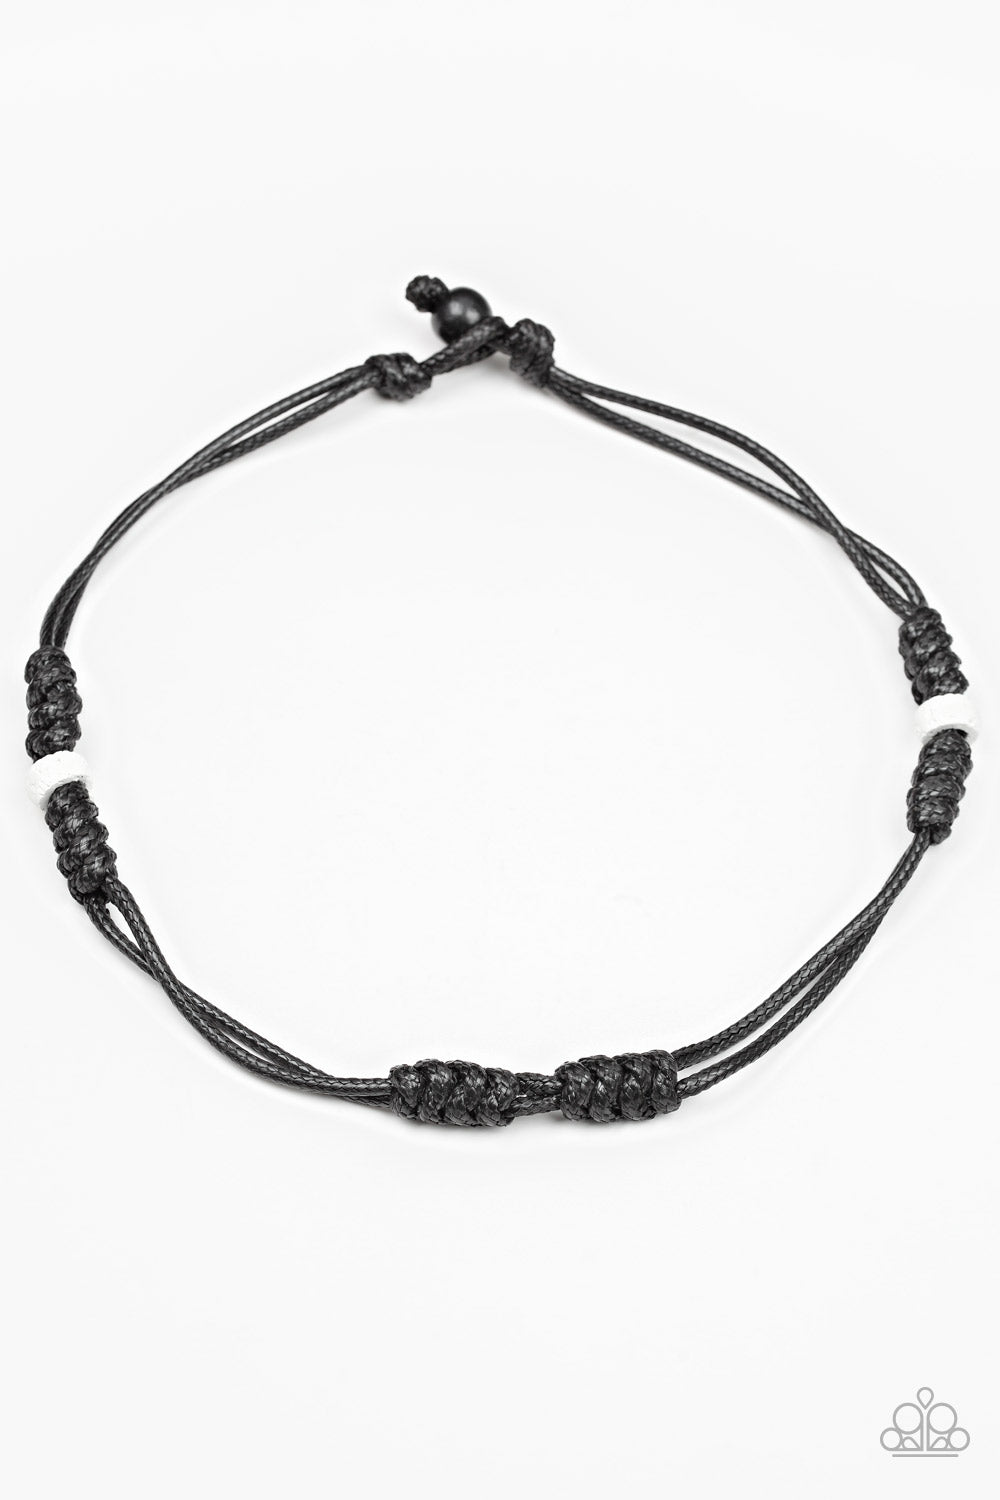 River Rover Necklace - Black Cord